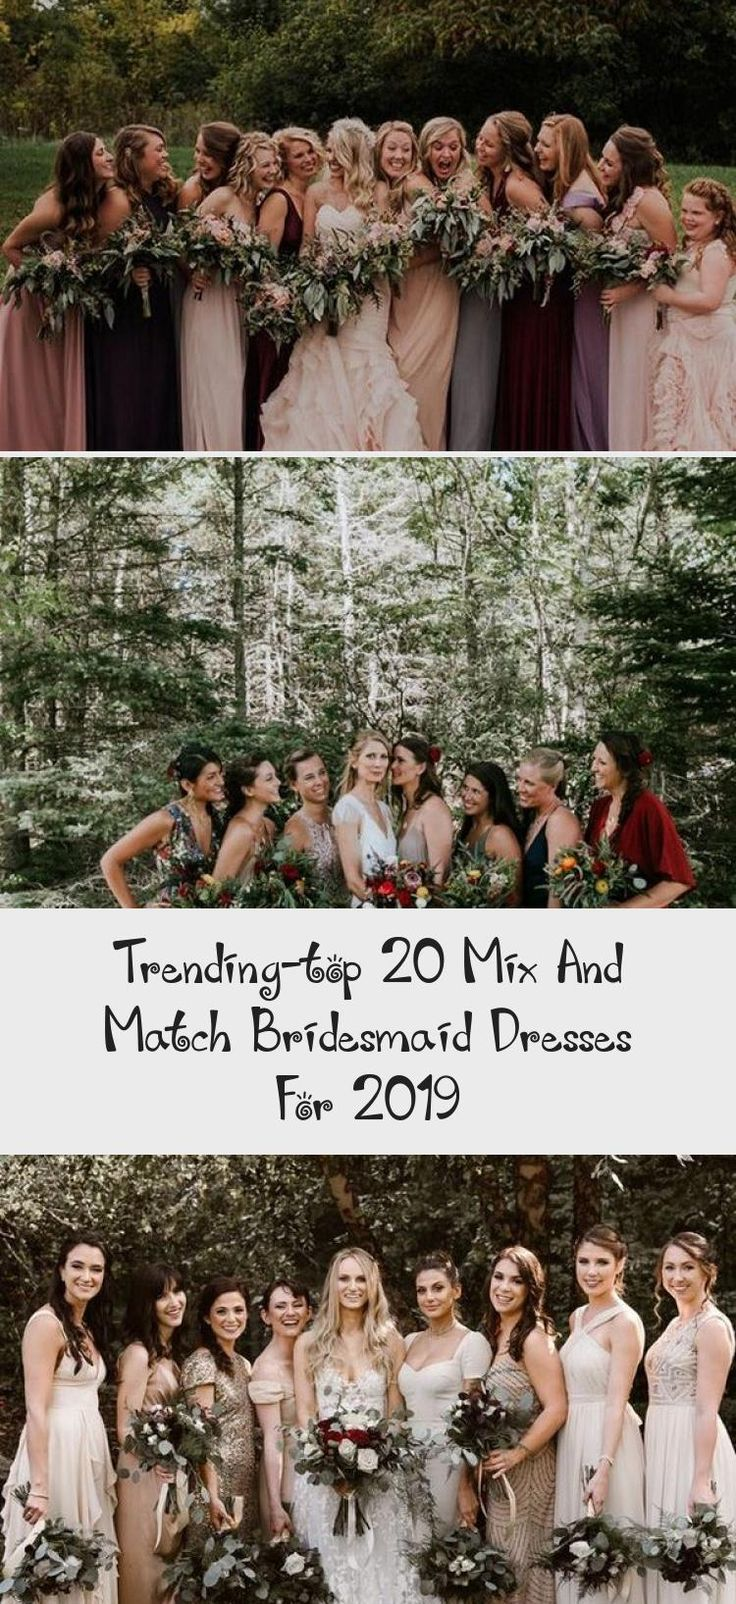 trending mix and match bridesmaid dresses for fall weddings #GrayBridesmaidDresses #BridesmaidDressesDustyRose #PinkBridesmaidDresses #CheapBridesmaidDresses #JuniorBridesmaidDresses